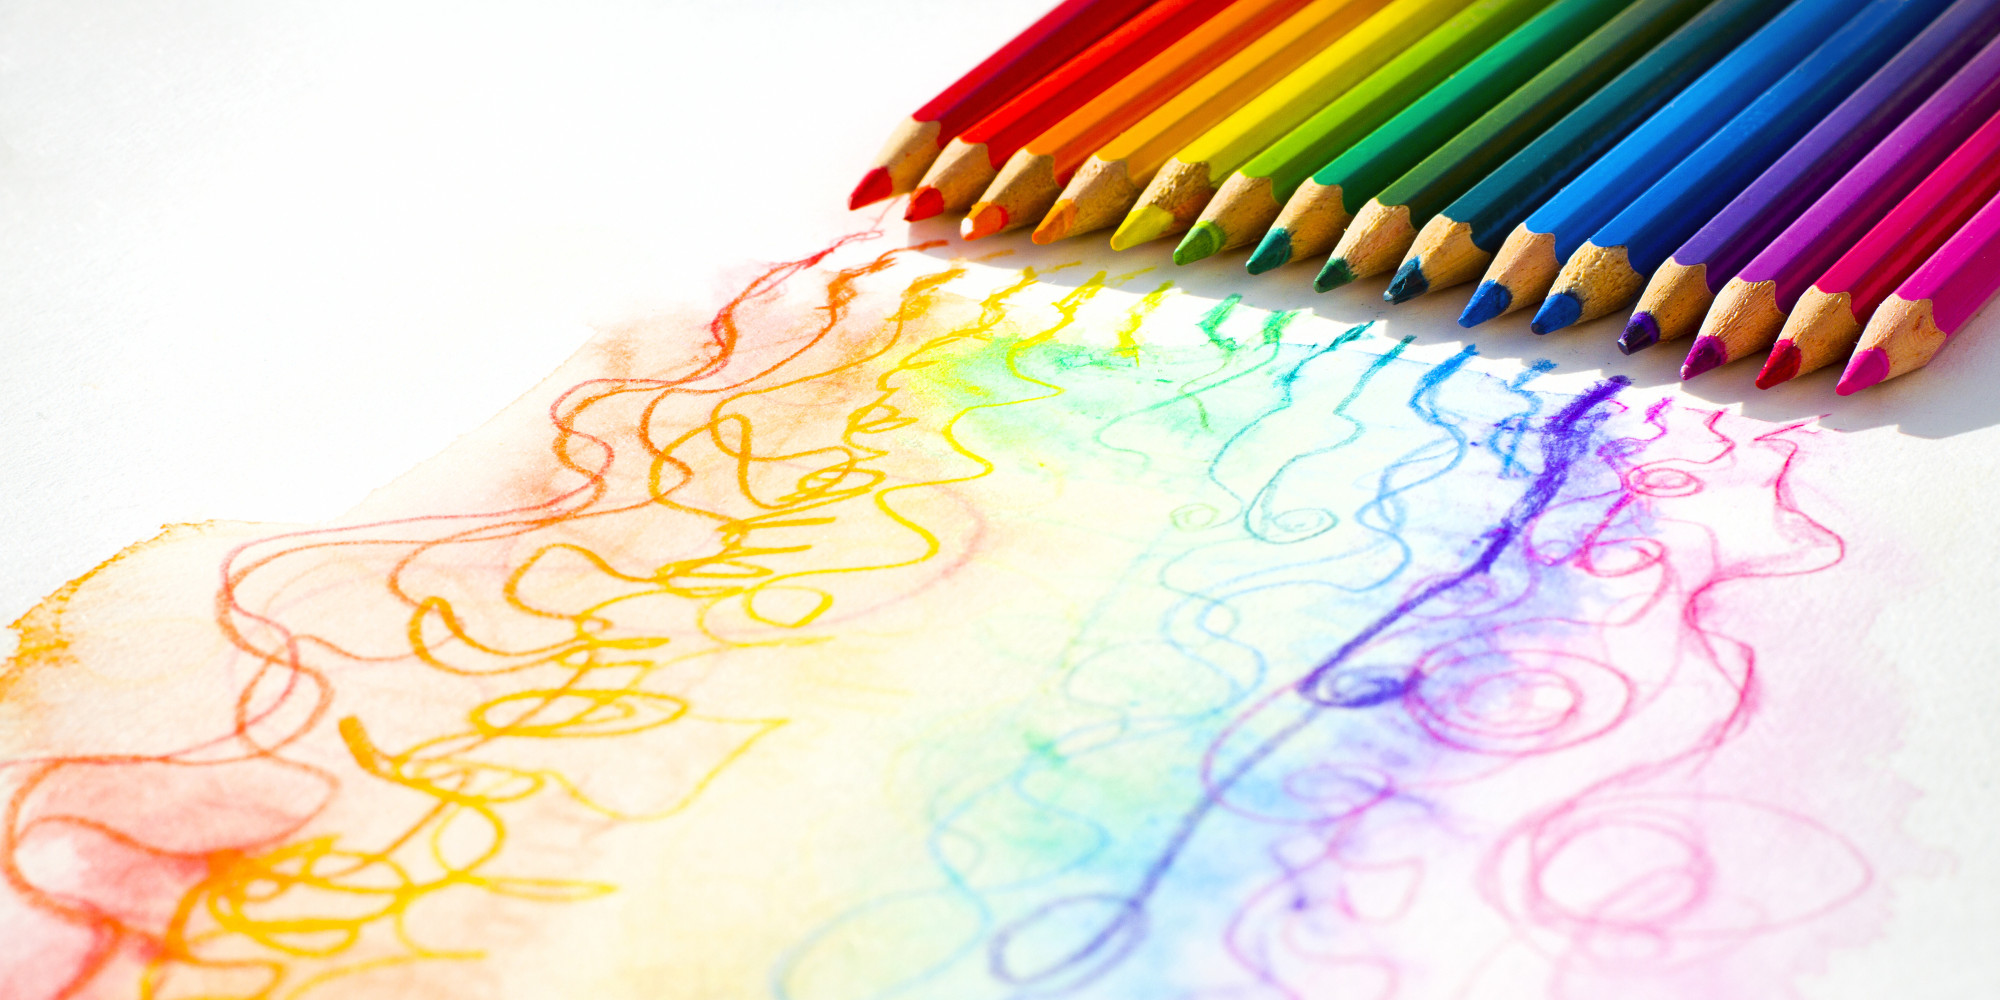 Colouring adults benefits - 7 Reasons Adult Coloring Books Are Great For Your Mental Emotional And Intellectual Health Huffpost